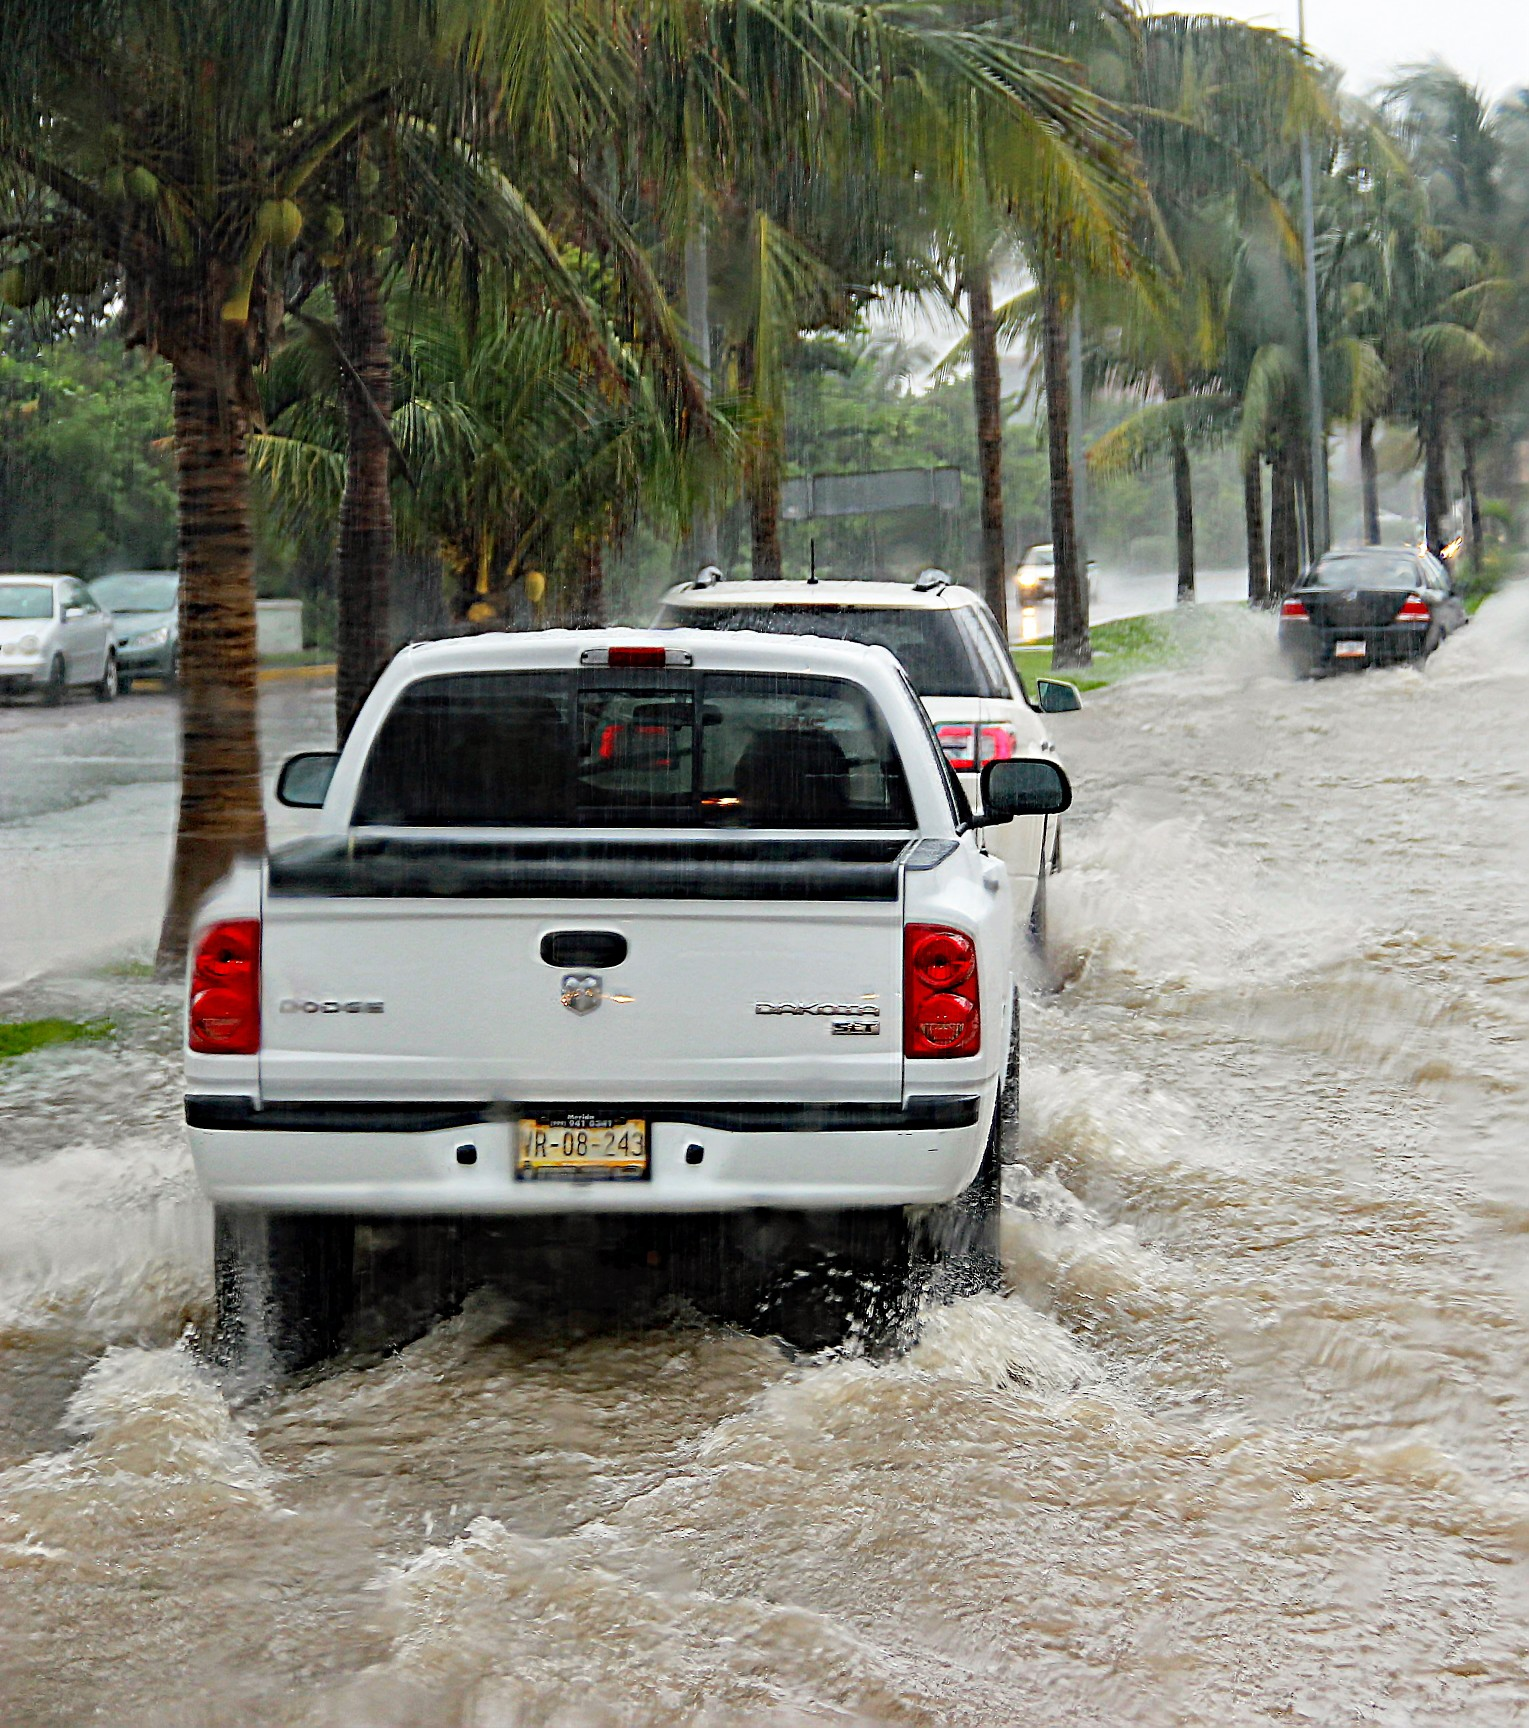 rain-wet-cars-heavy-rain-flooded-street-ugly-day-water-on-the-street-a-lot-of-water-on-street